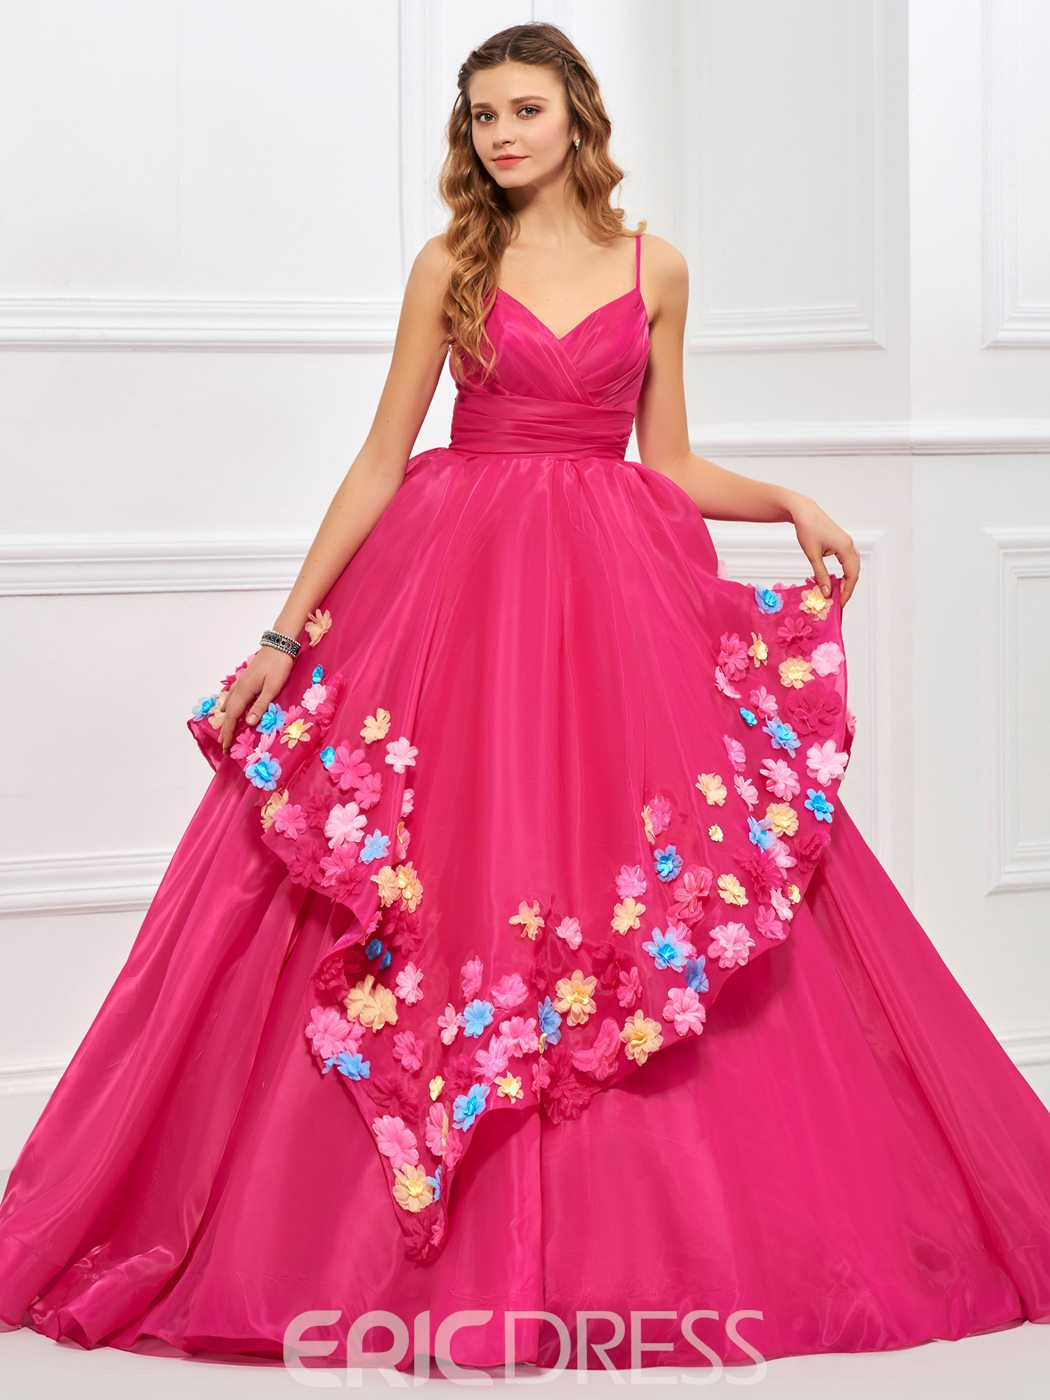 Ericdress Ball Spagehetti Straps Flower Applique Quinceanera Gown